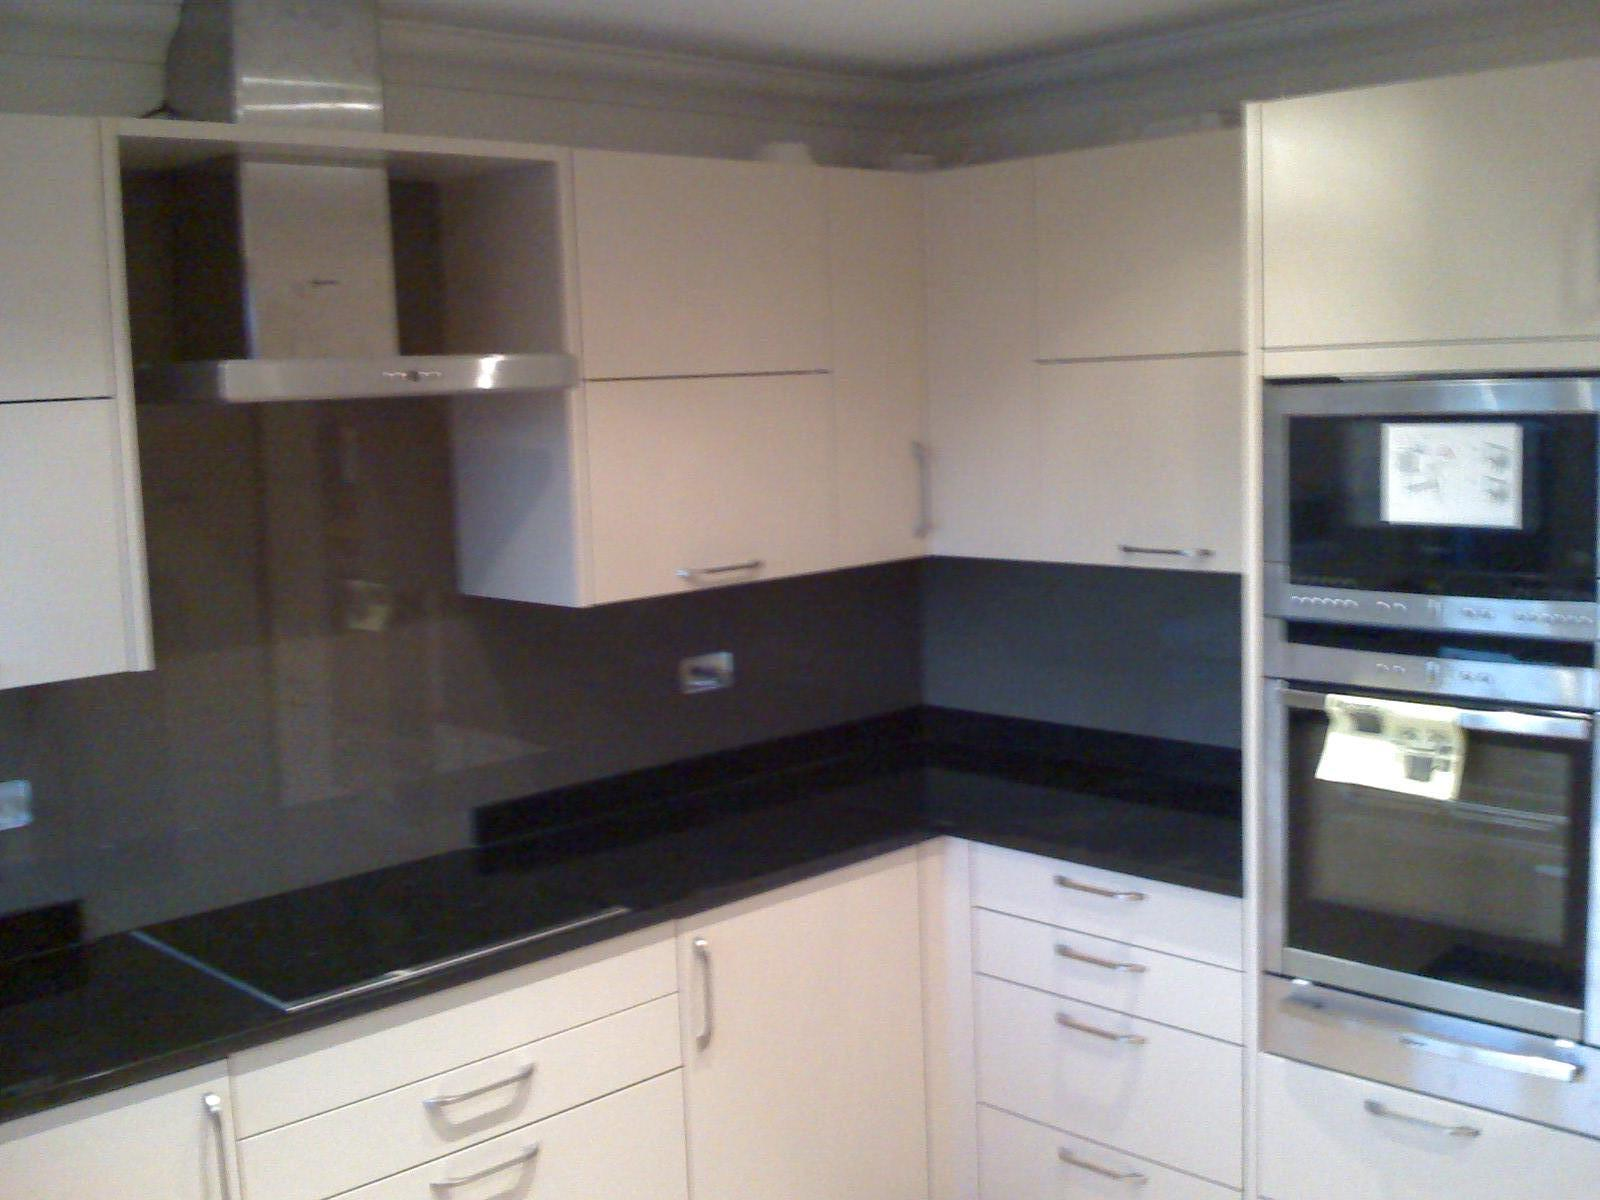 Great Kitchens with Microwave and Oven Built 1600 x 1200 · 149 kB · jpeg